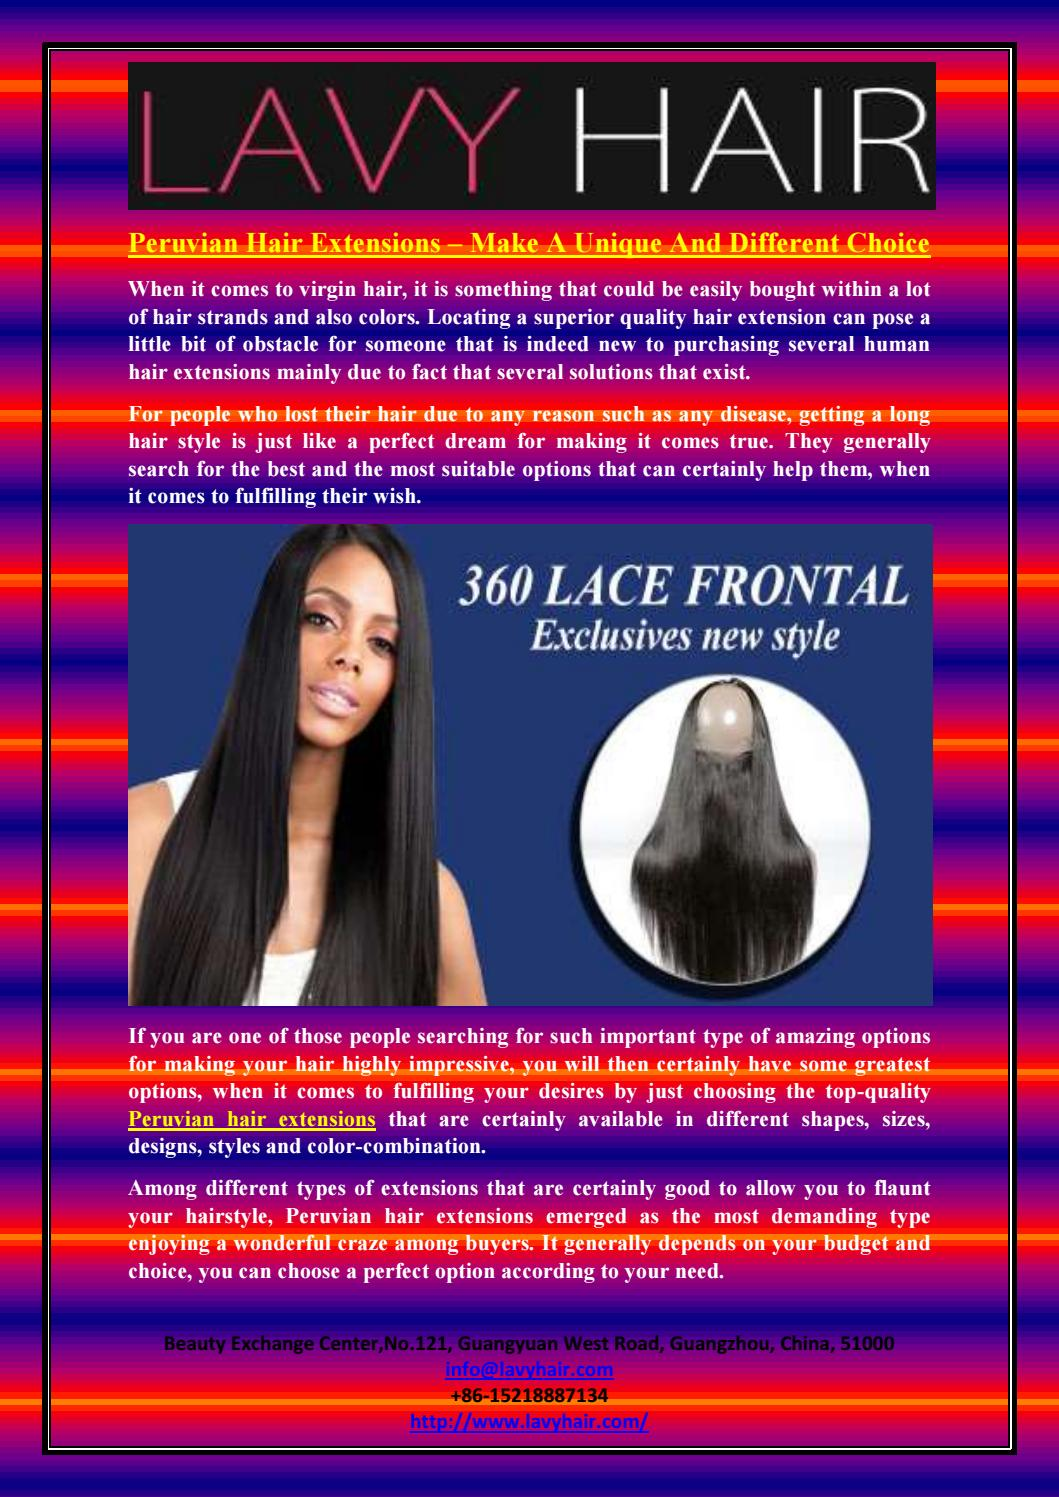 Peruvian Hair Extensions Make A Unique And Different Choice By